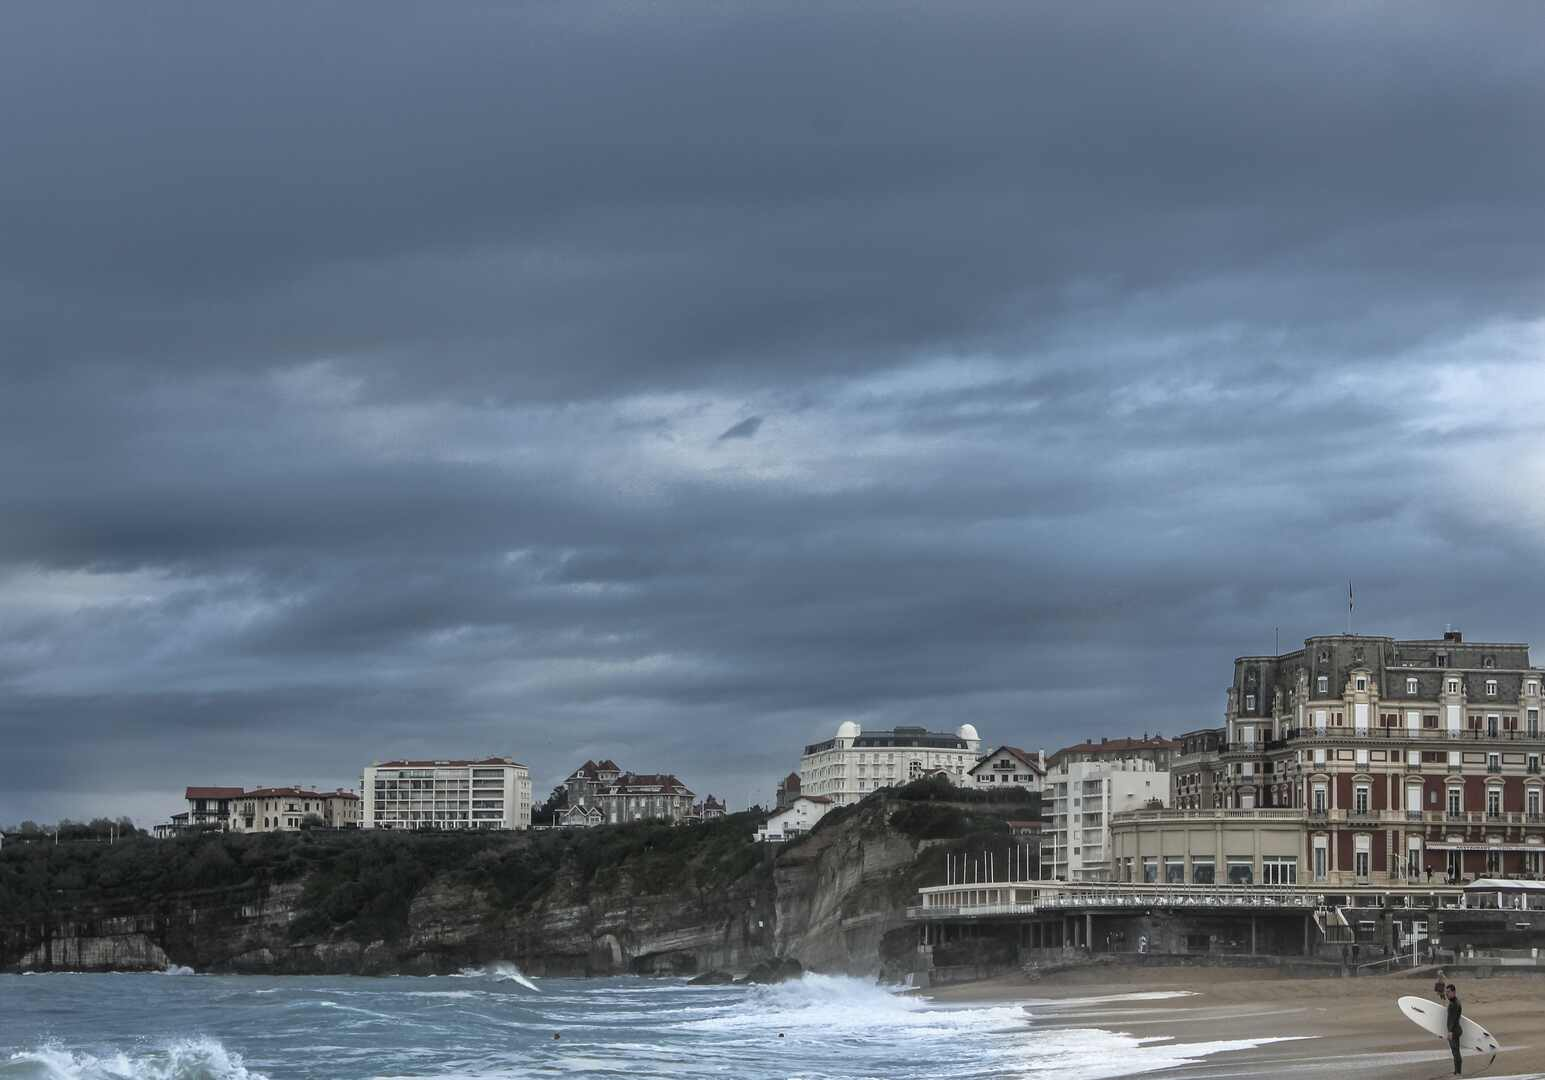 [image: beach, cliffs, buildings, dark clouds and a surfer]